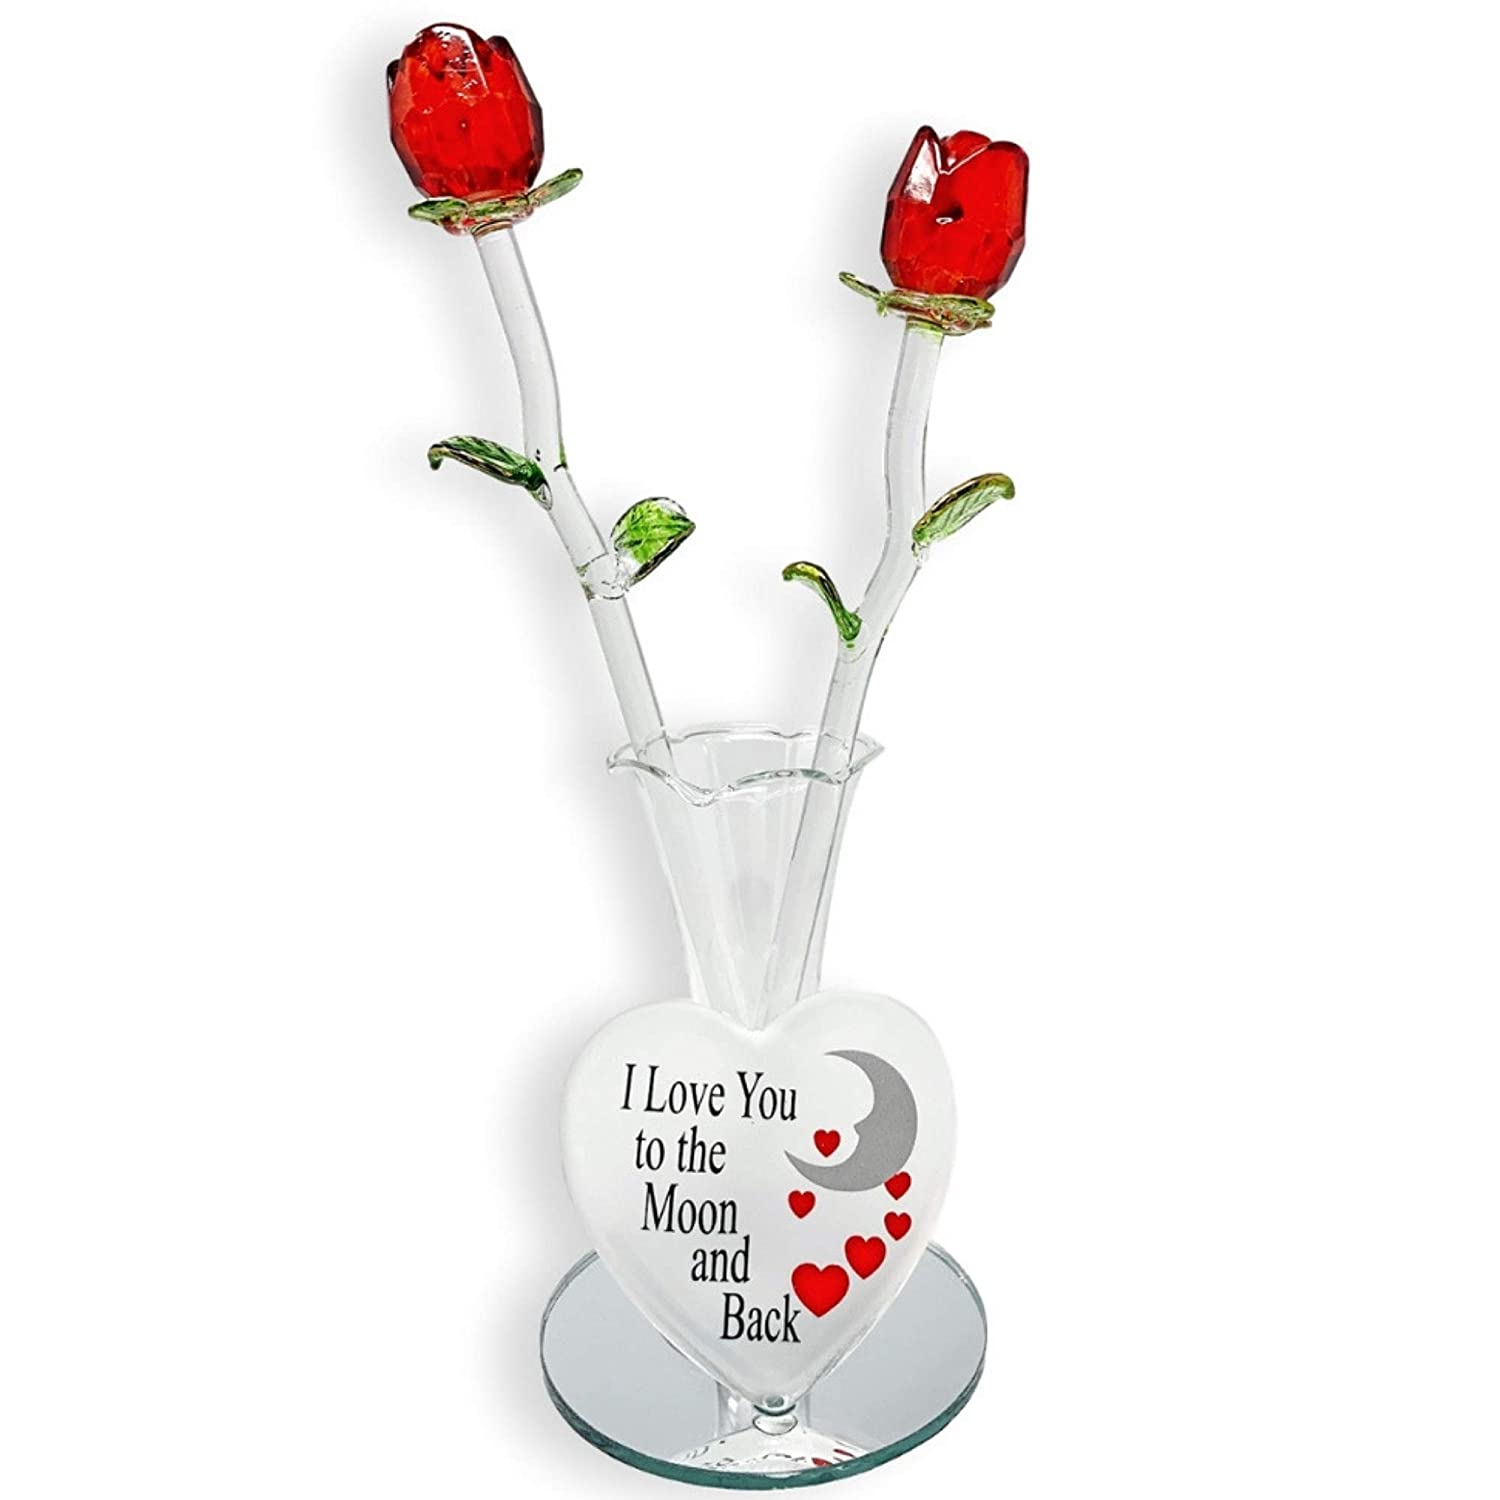 619854f7fd2 BANBERRY DESIGNS Crystal Flower Bouquet - Set of 2 Red Roses in a Heart  Shaped Vase - I Love You to The Moon and Back - Mother s Day Valentine s  Day ...